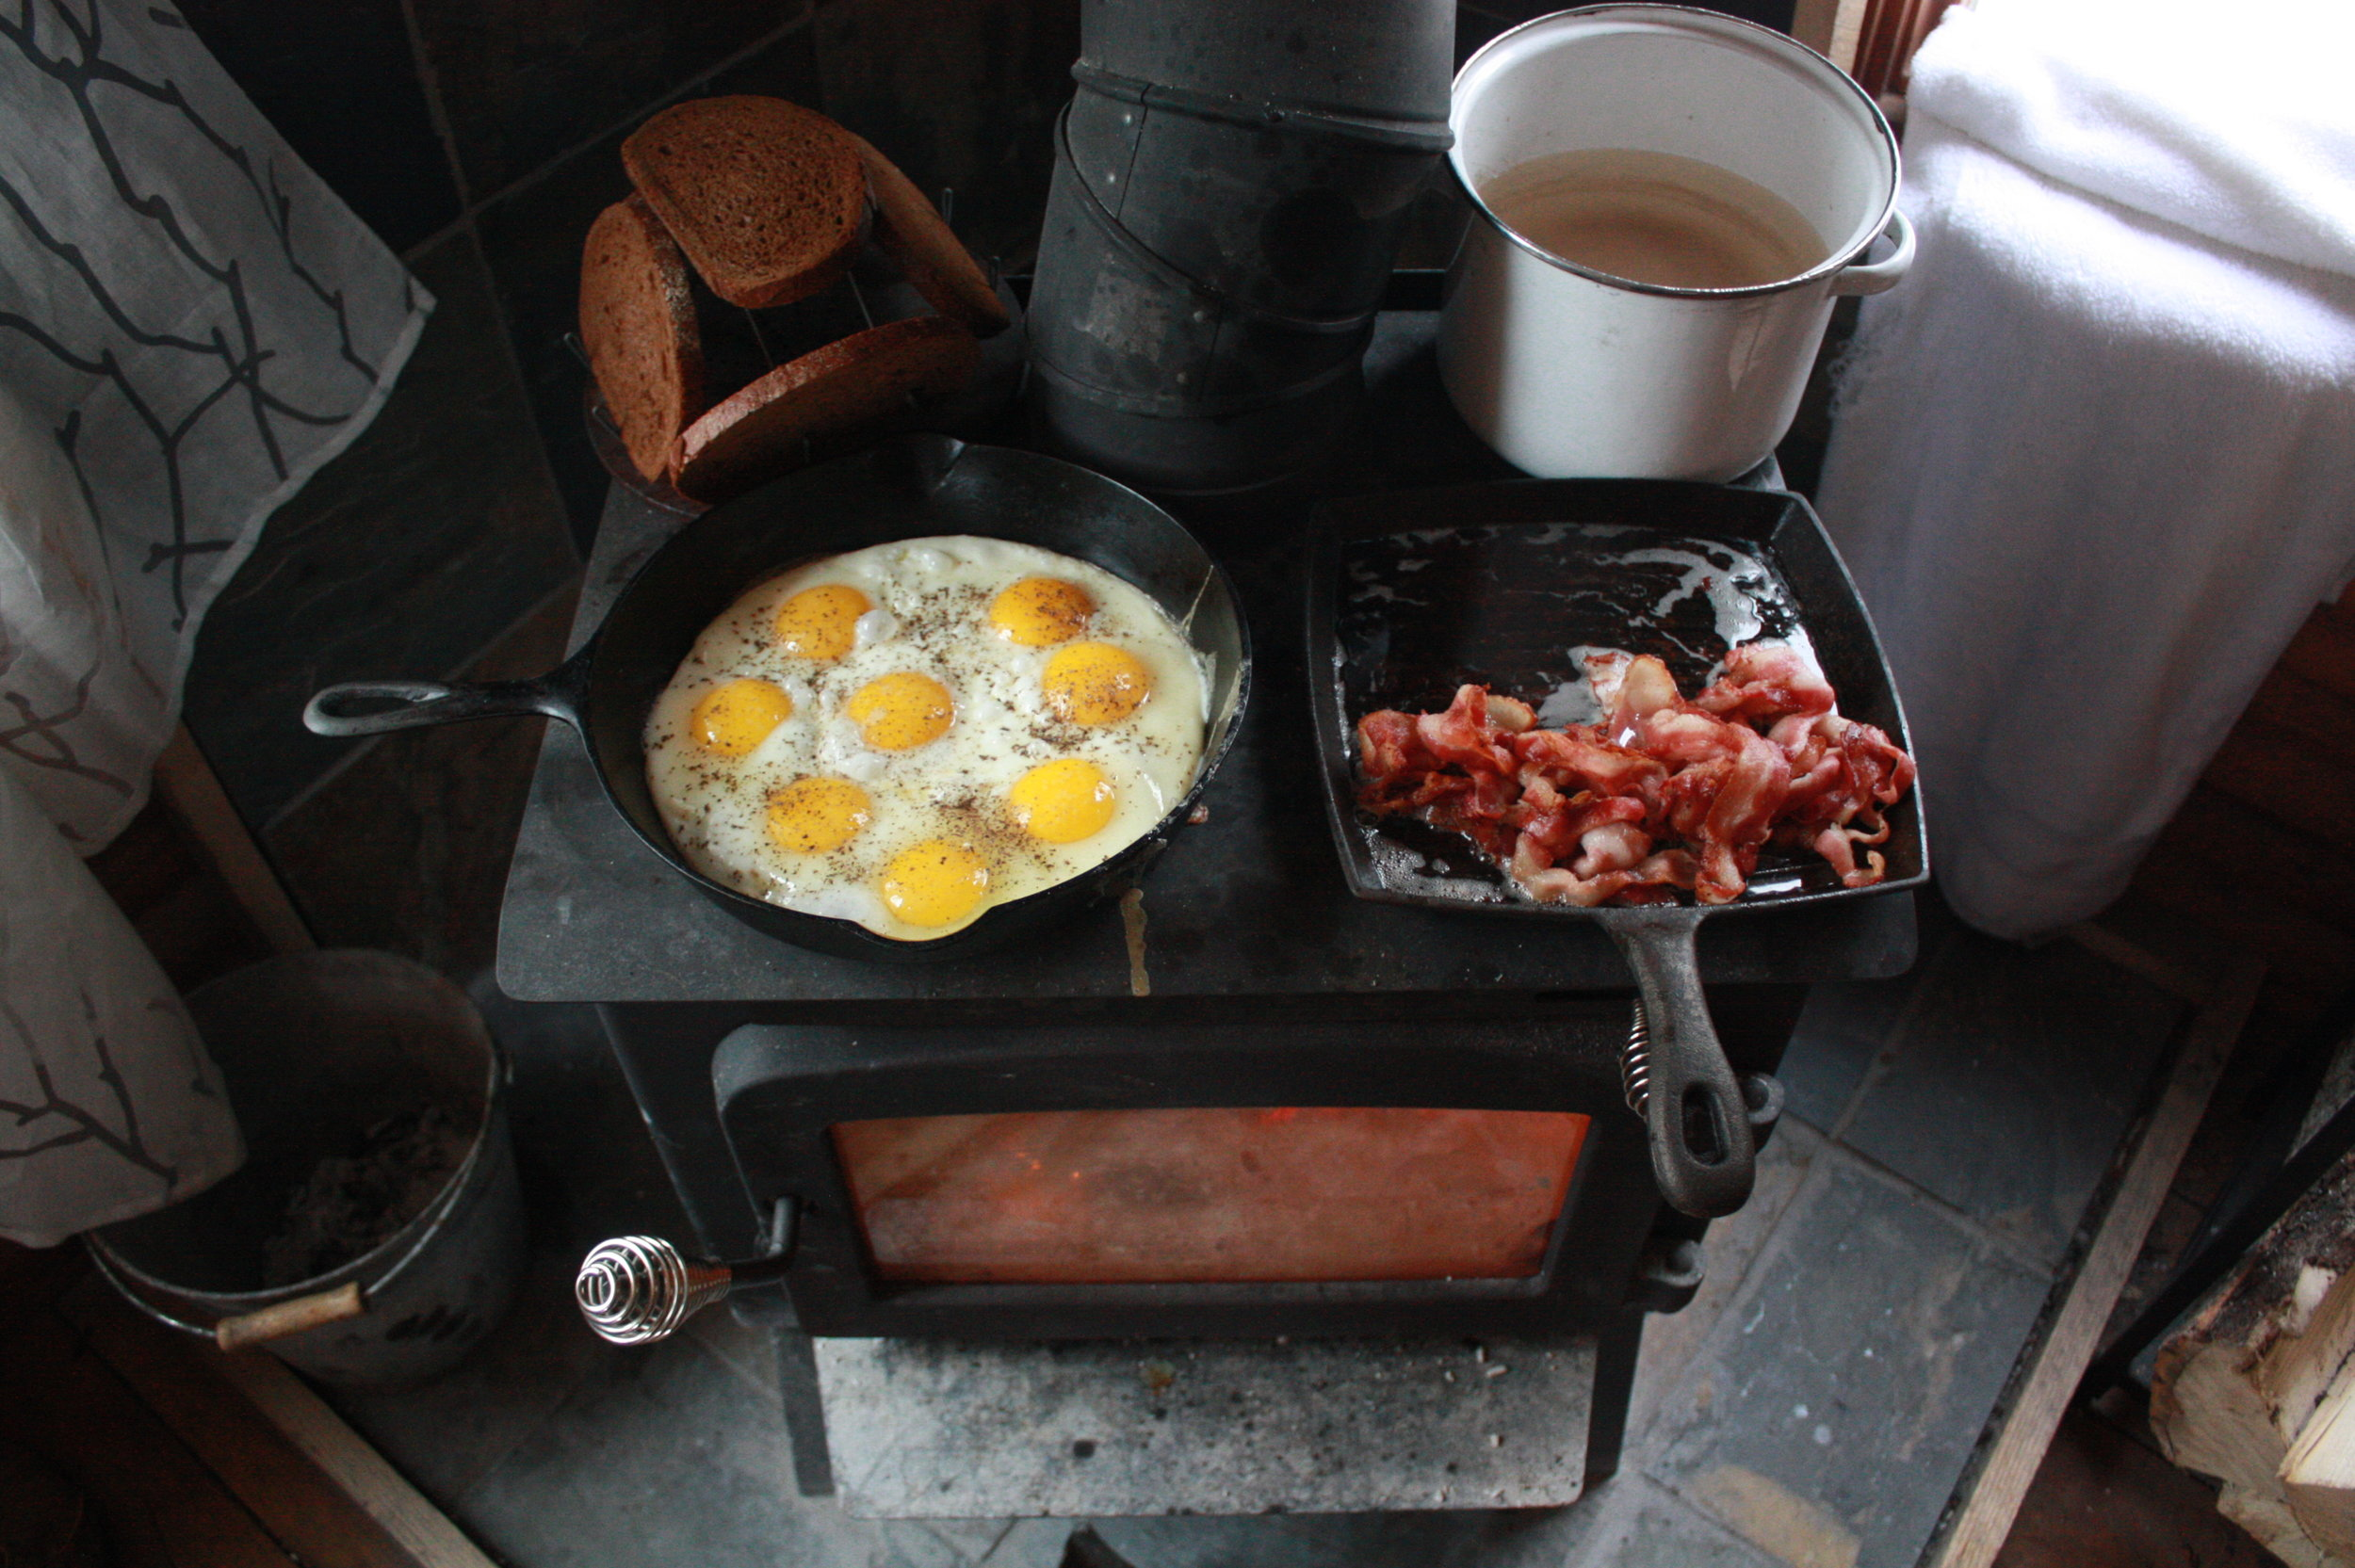 Retreat breakfast routine - all the good fats, cooked on the woodstove.